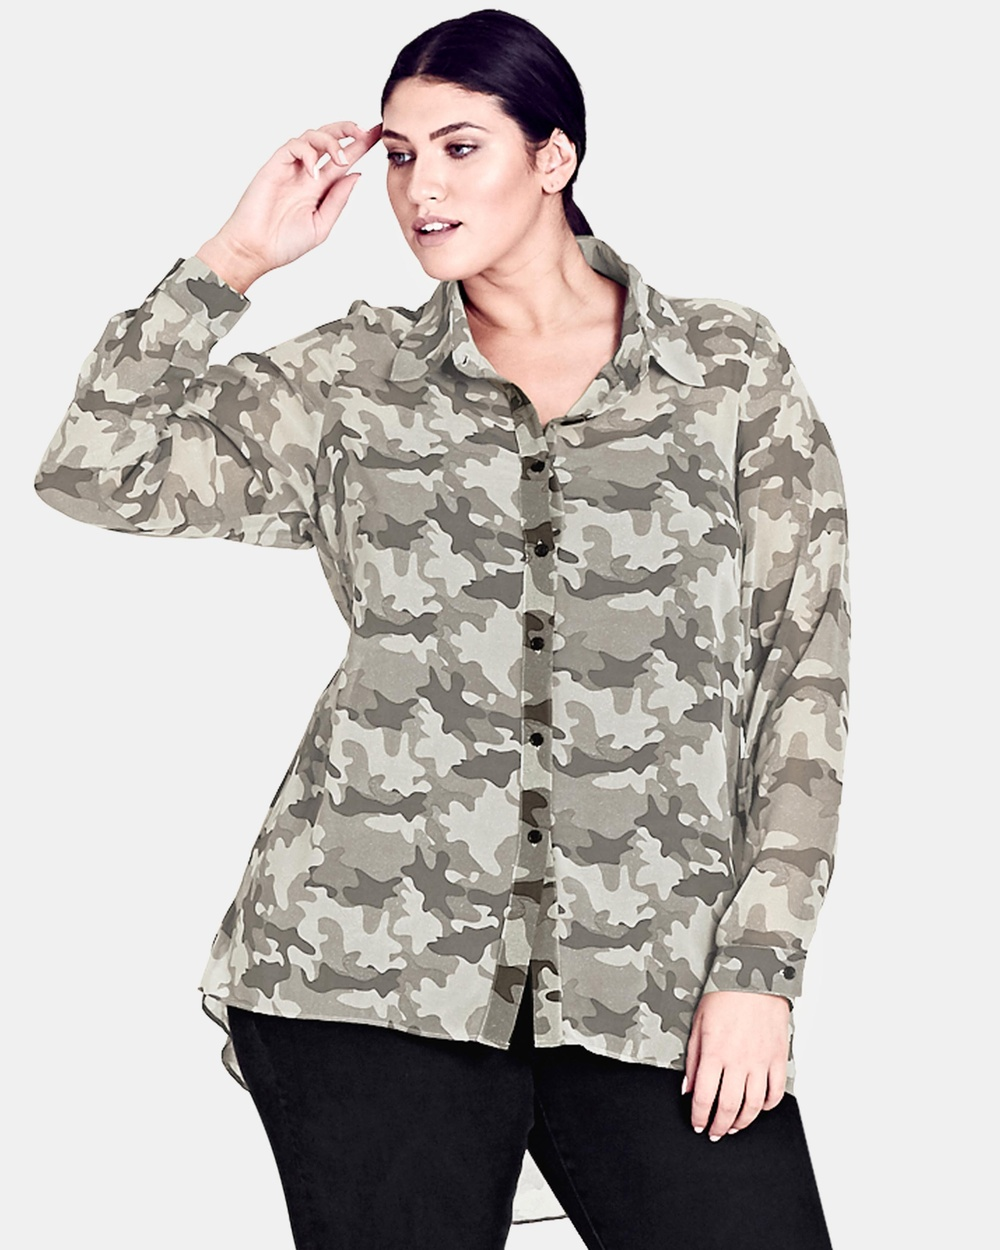 City Chic Camo Shirt Tops Camo Camo Shirt